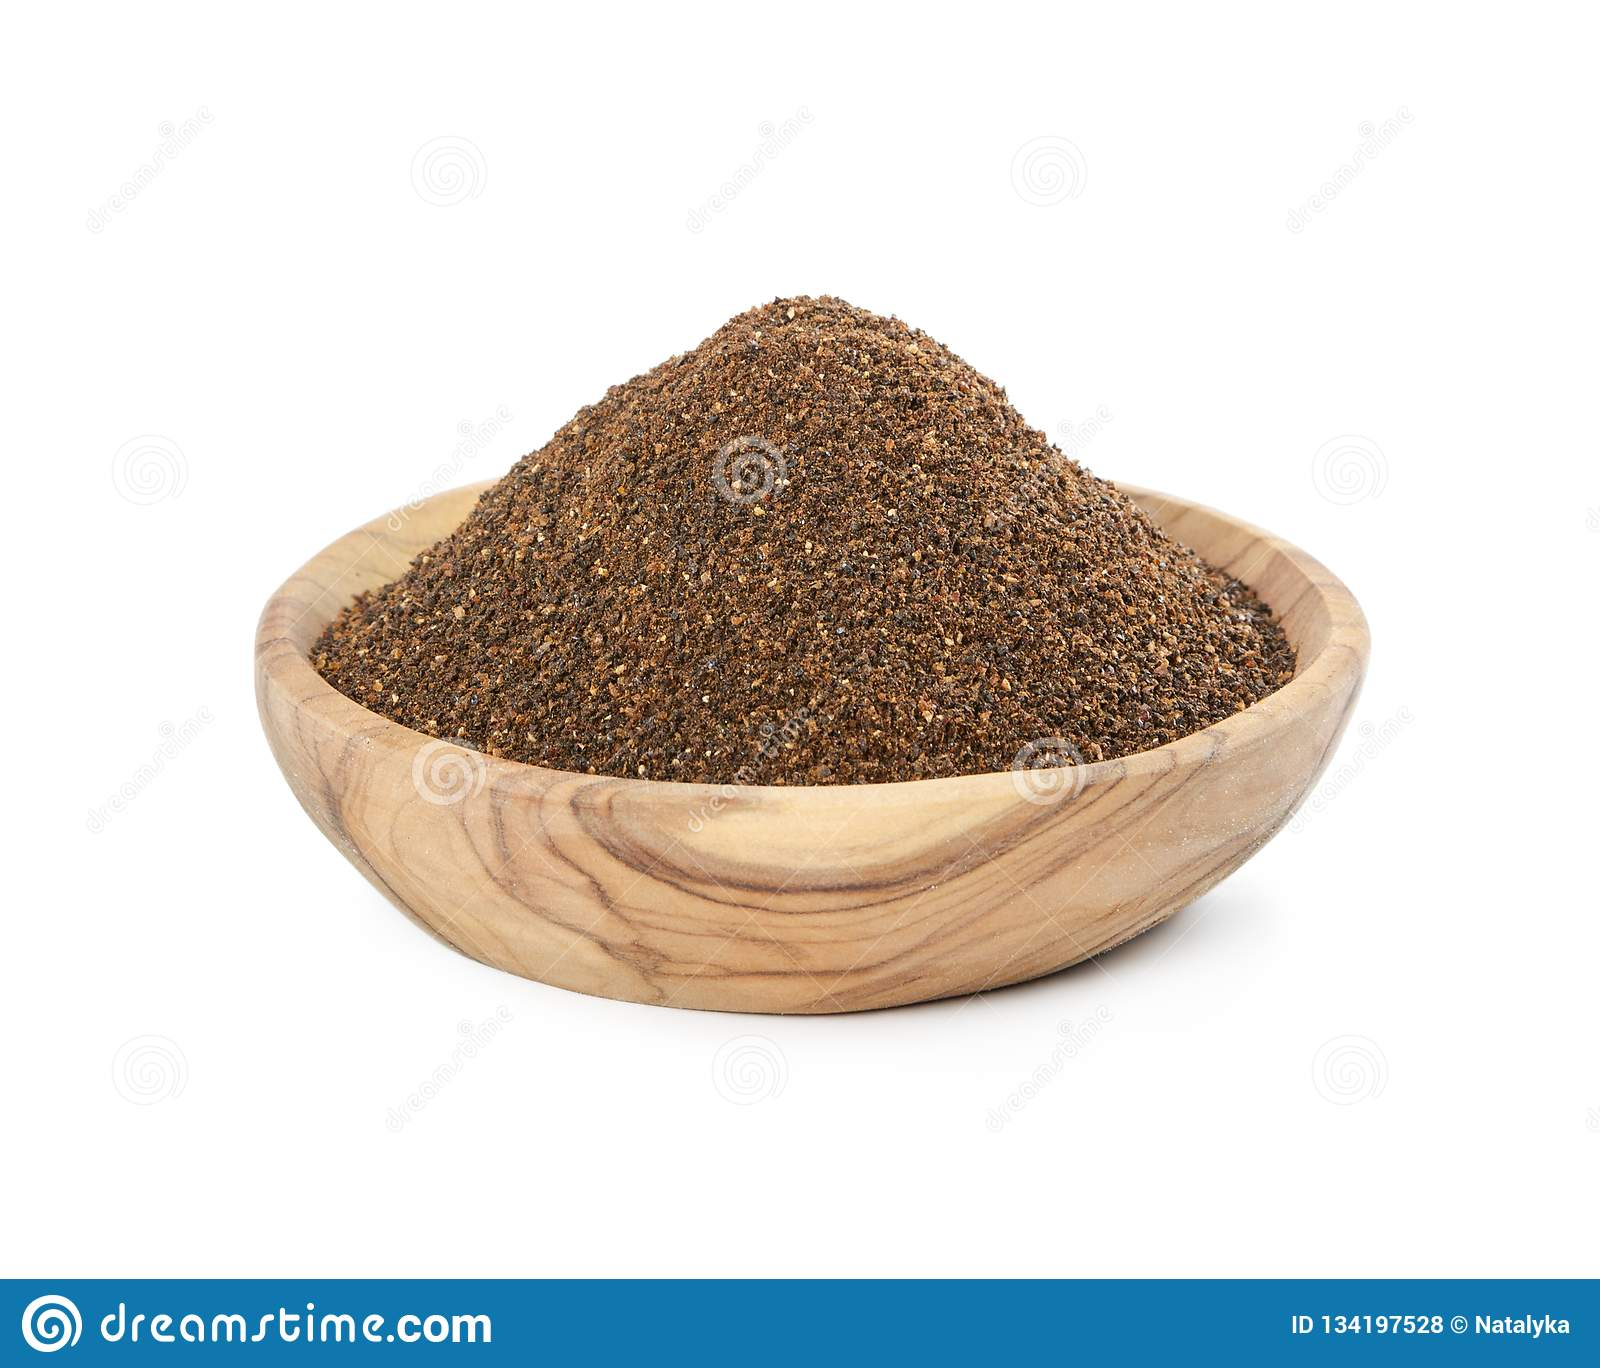 Fermented rye malt in wooden bowl isolated on white